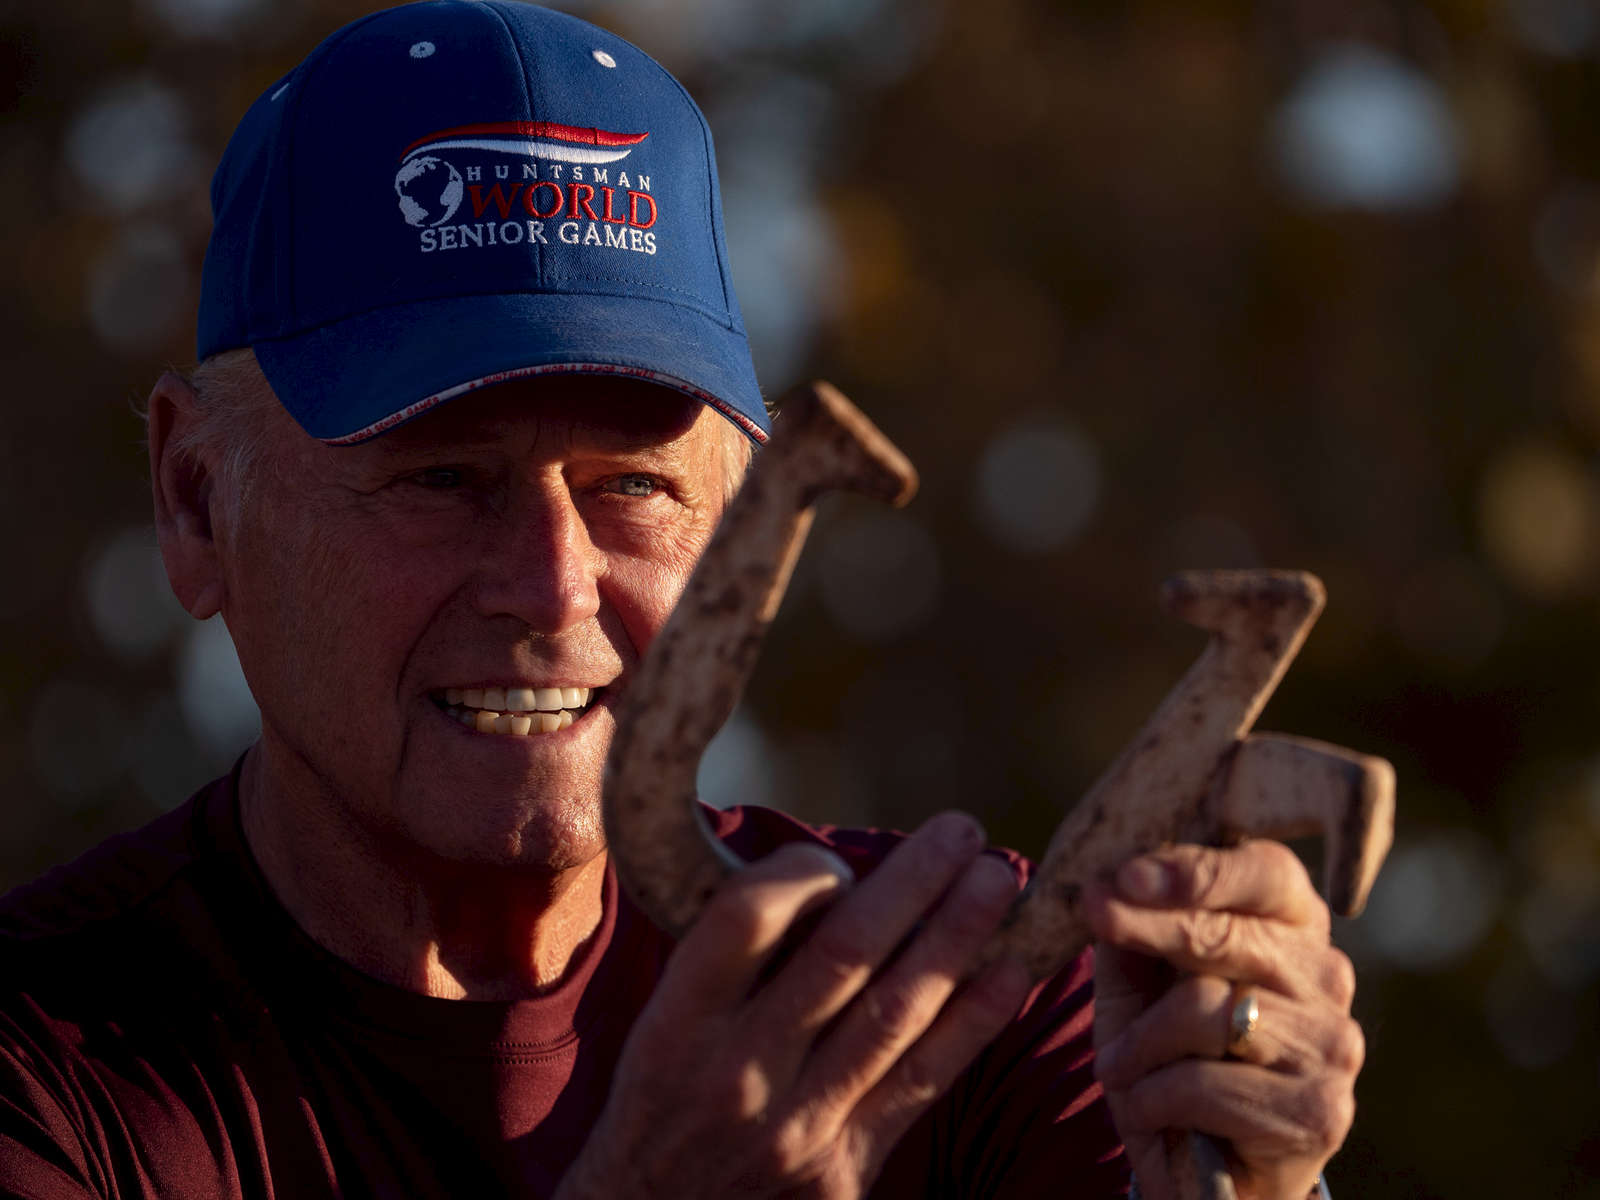 Senior athlete Leroy Wold aged seventy eight poses for a portrait at the Horse shoes competition during the Huntsman World Senior Games on October 16, 2019 in St. George, Utah.